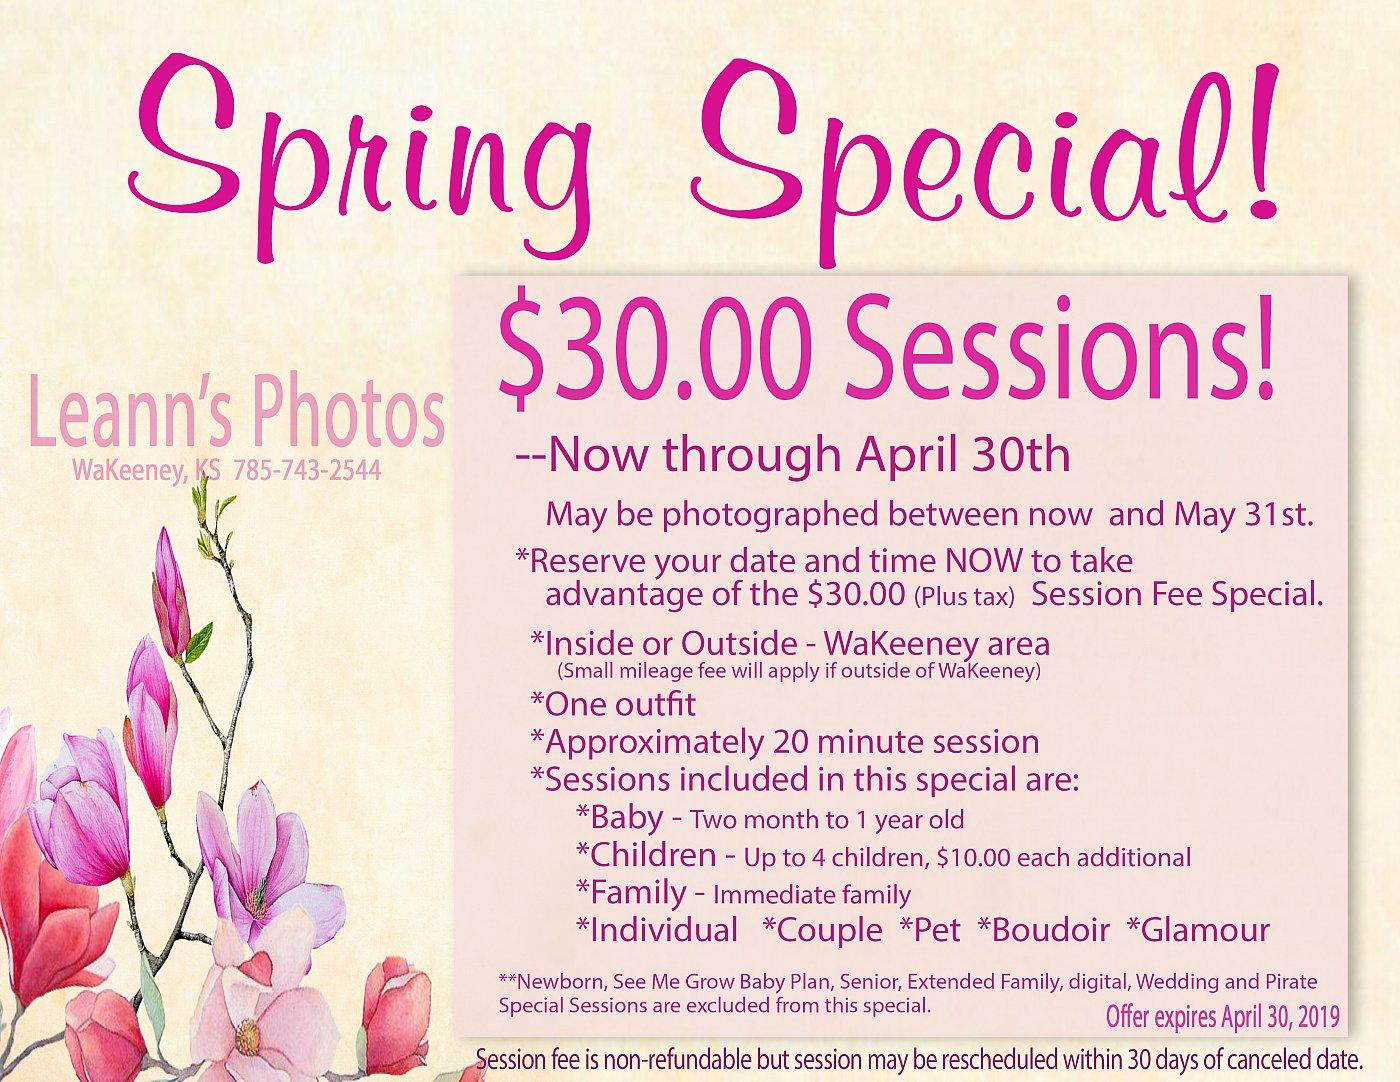 Spring $30.00 Sessions!